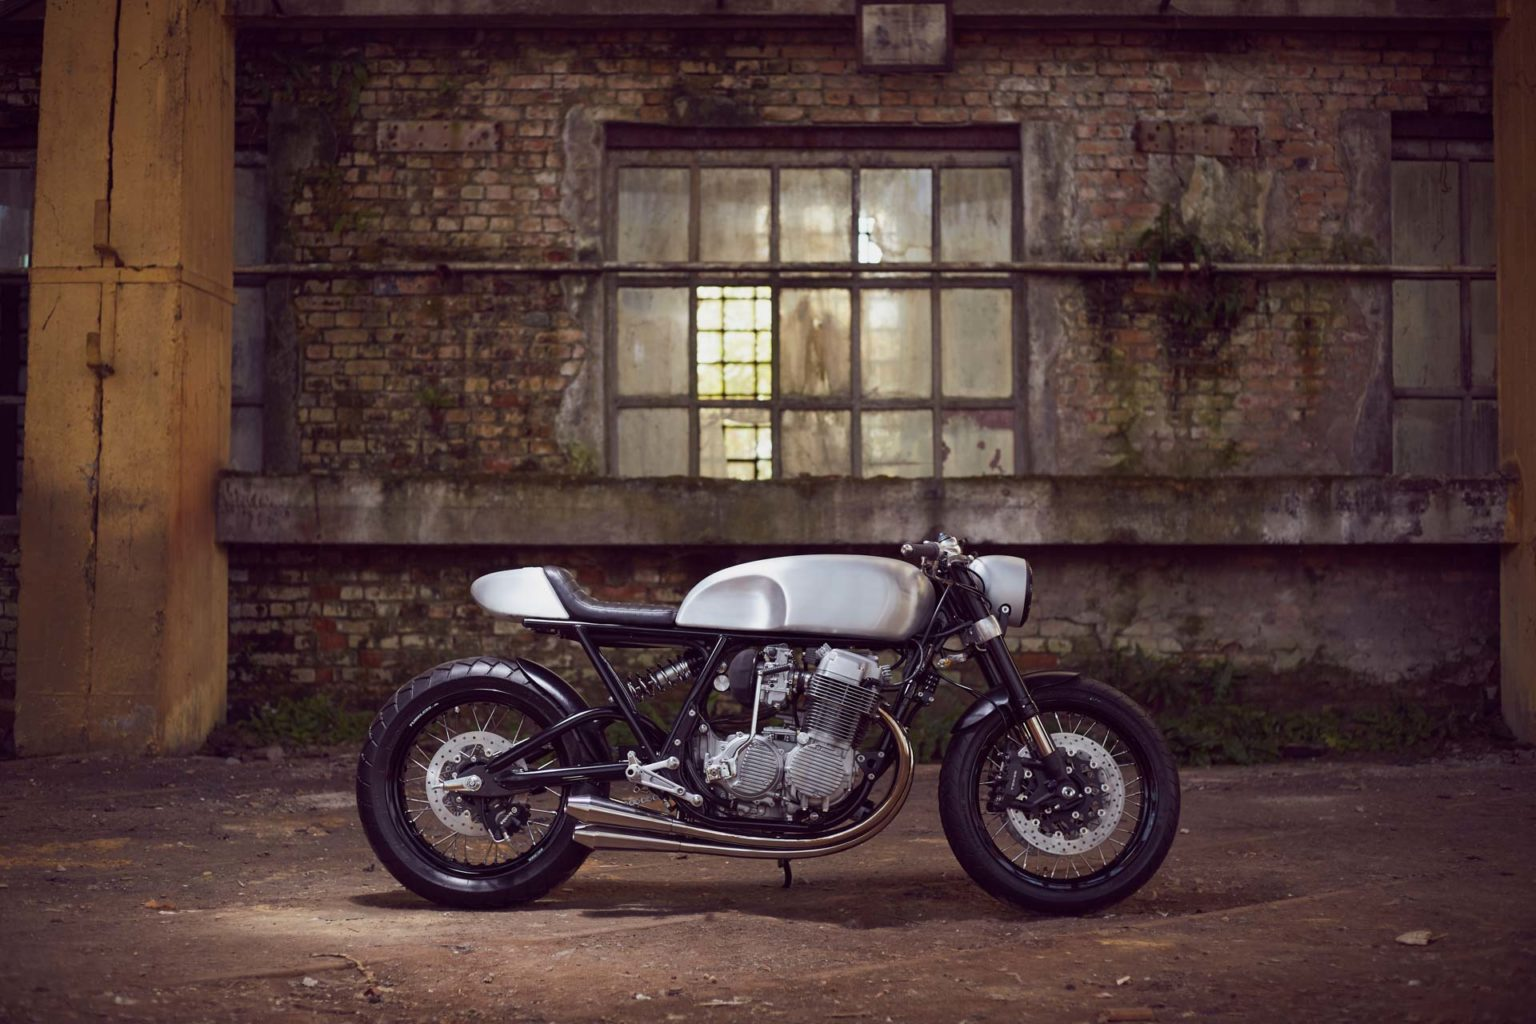 Honda CB750 by MessnerMoto